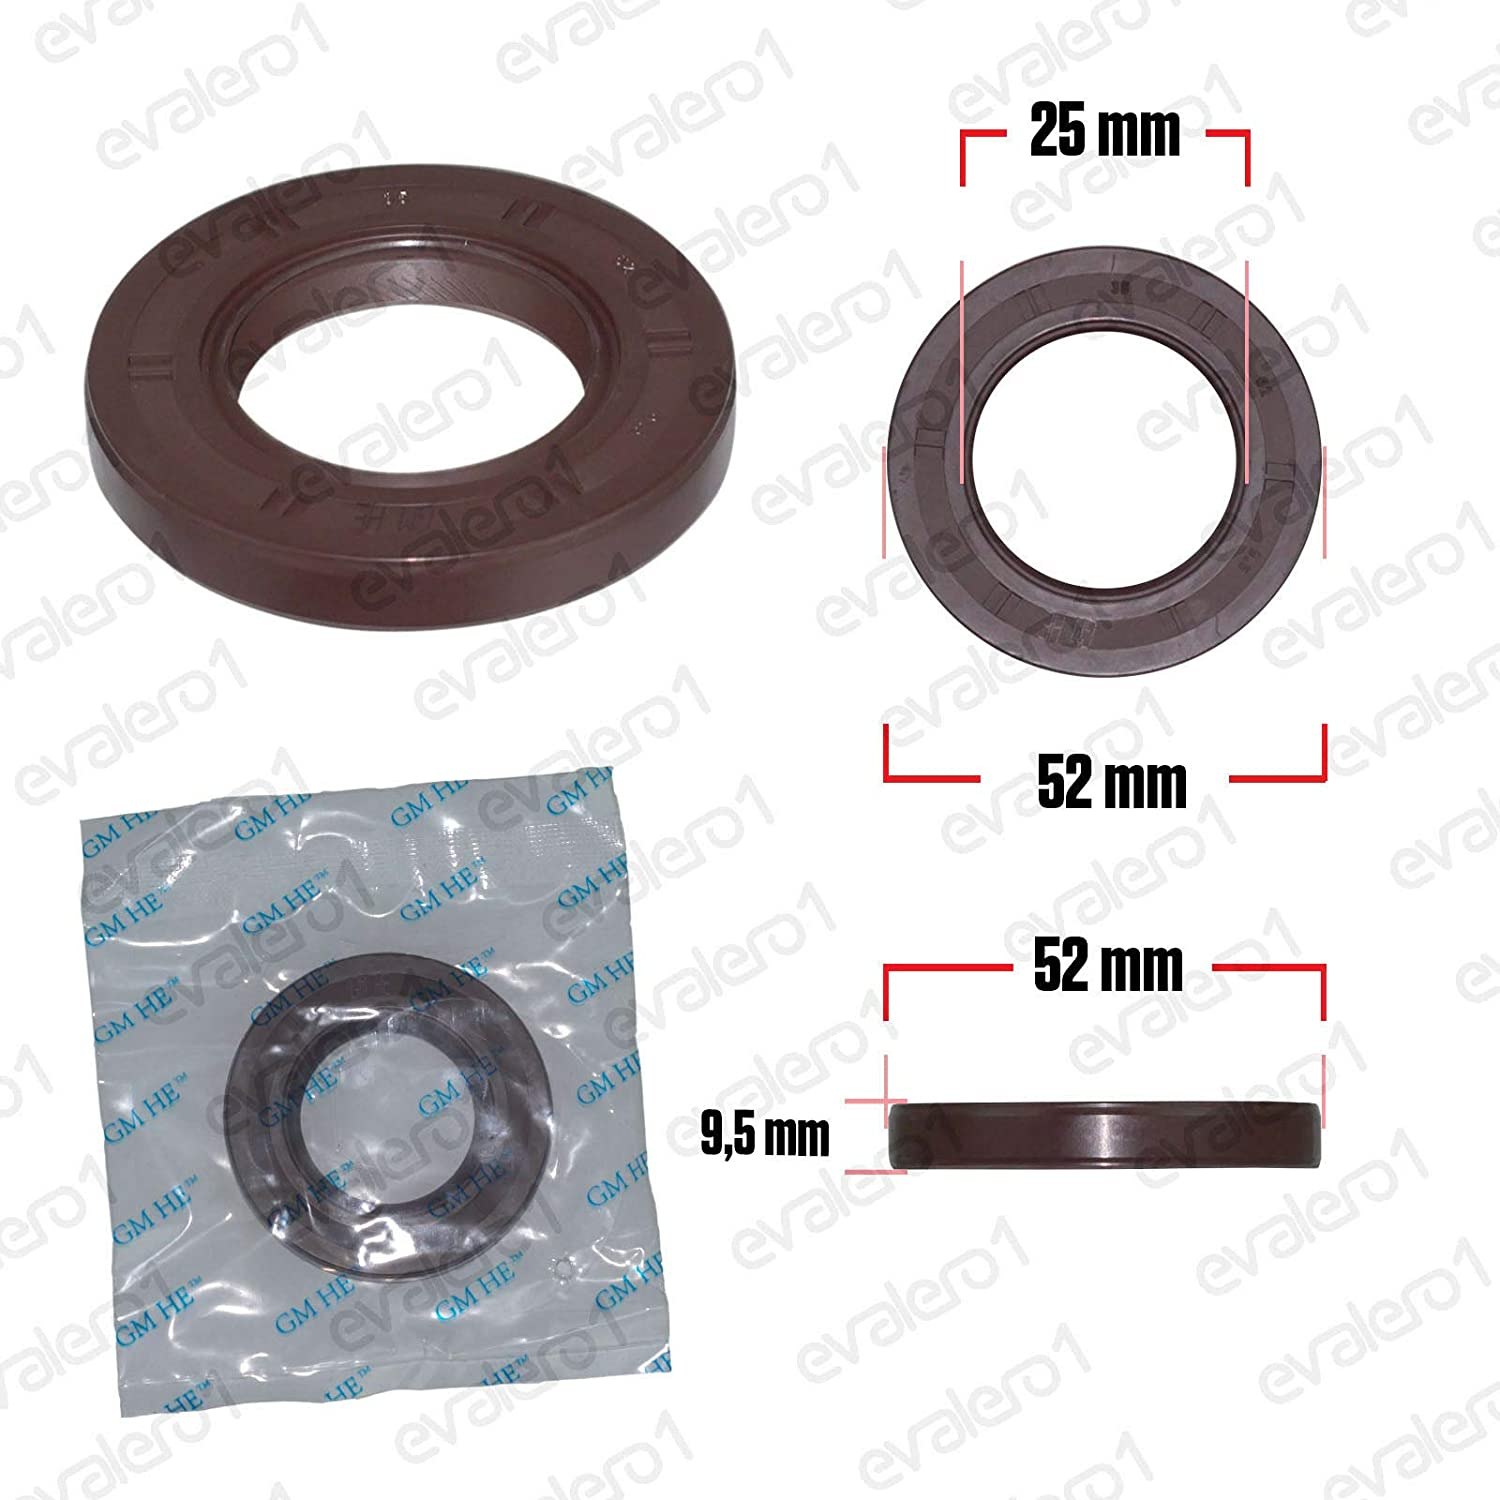 2271 TRANSFER CASE SHIFT SHAFT OIL SEAL 94535473 SPARK 2013-2015